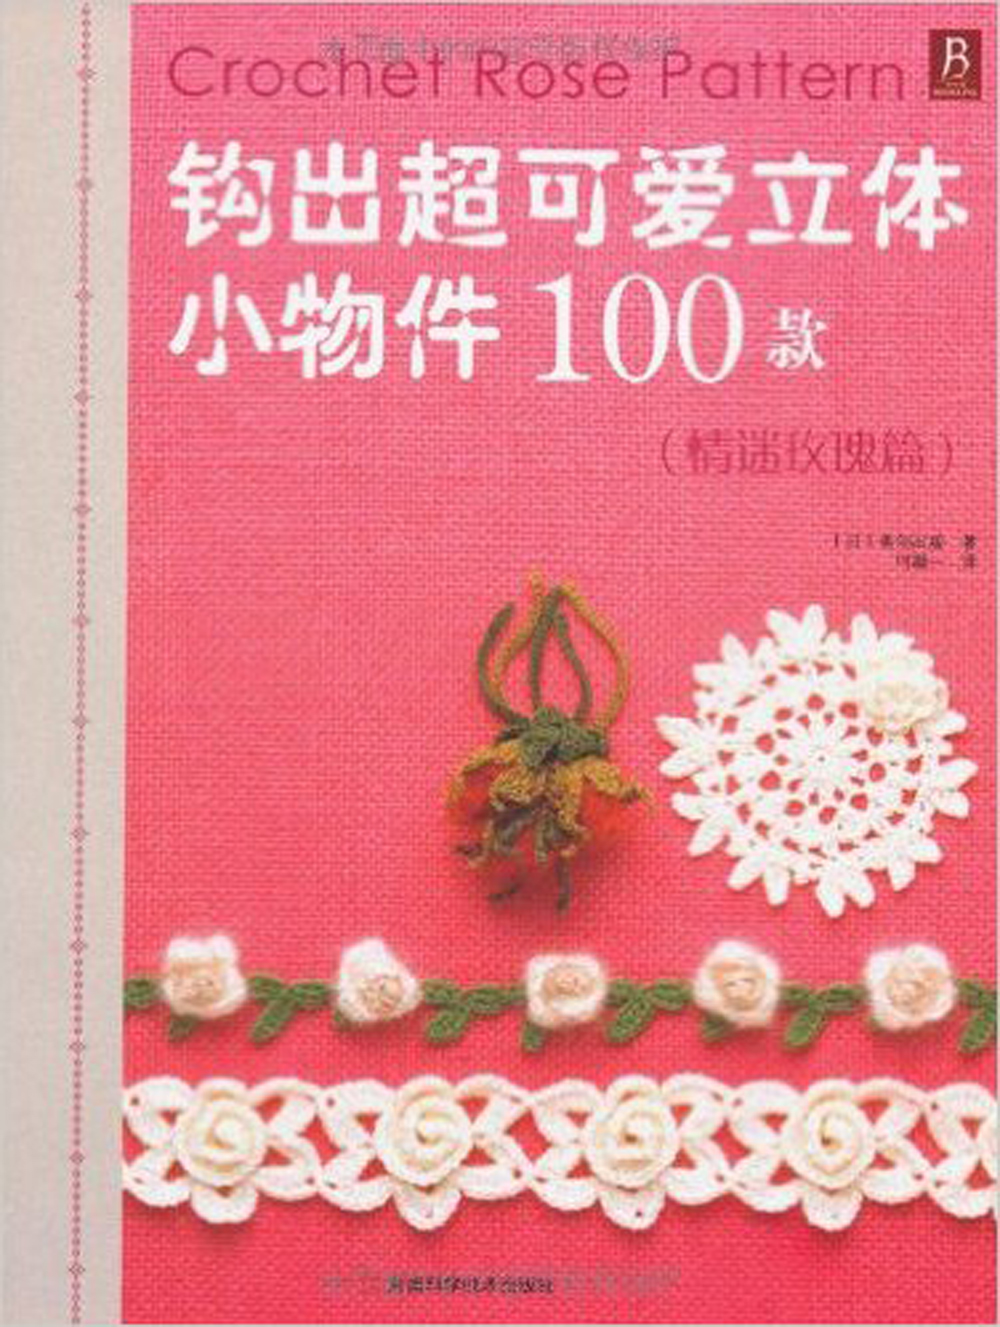 Crochet Rose Pattern Book in chinese / Weaving super-cute 3d small objects 100 models Chinese knitting book 100 super cute little embroidery chinese embroidery handmade art design book